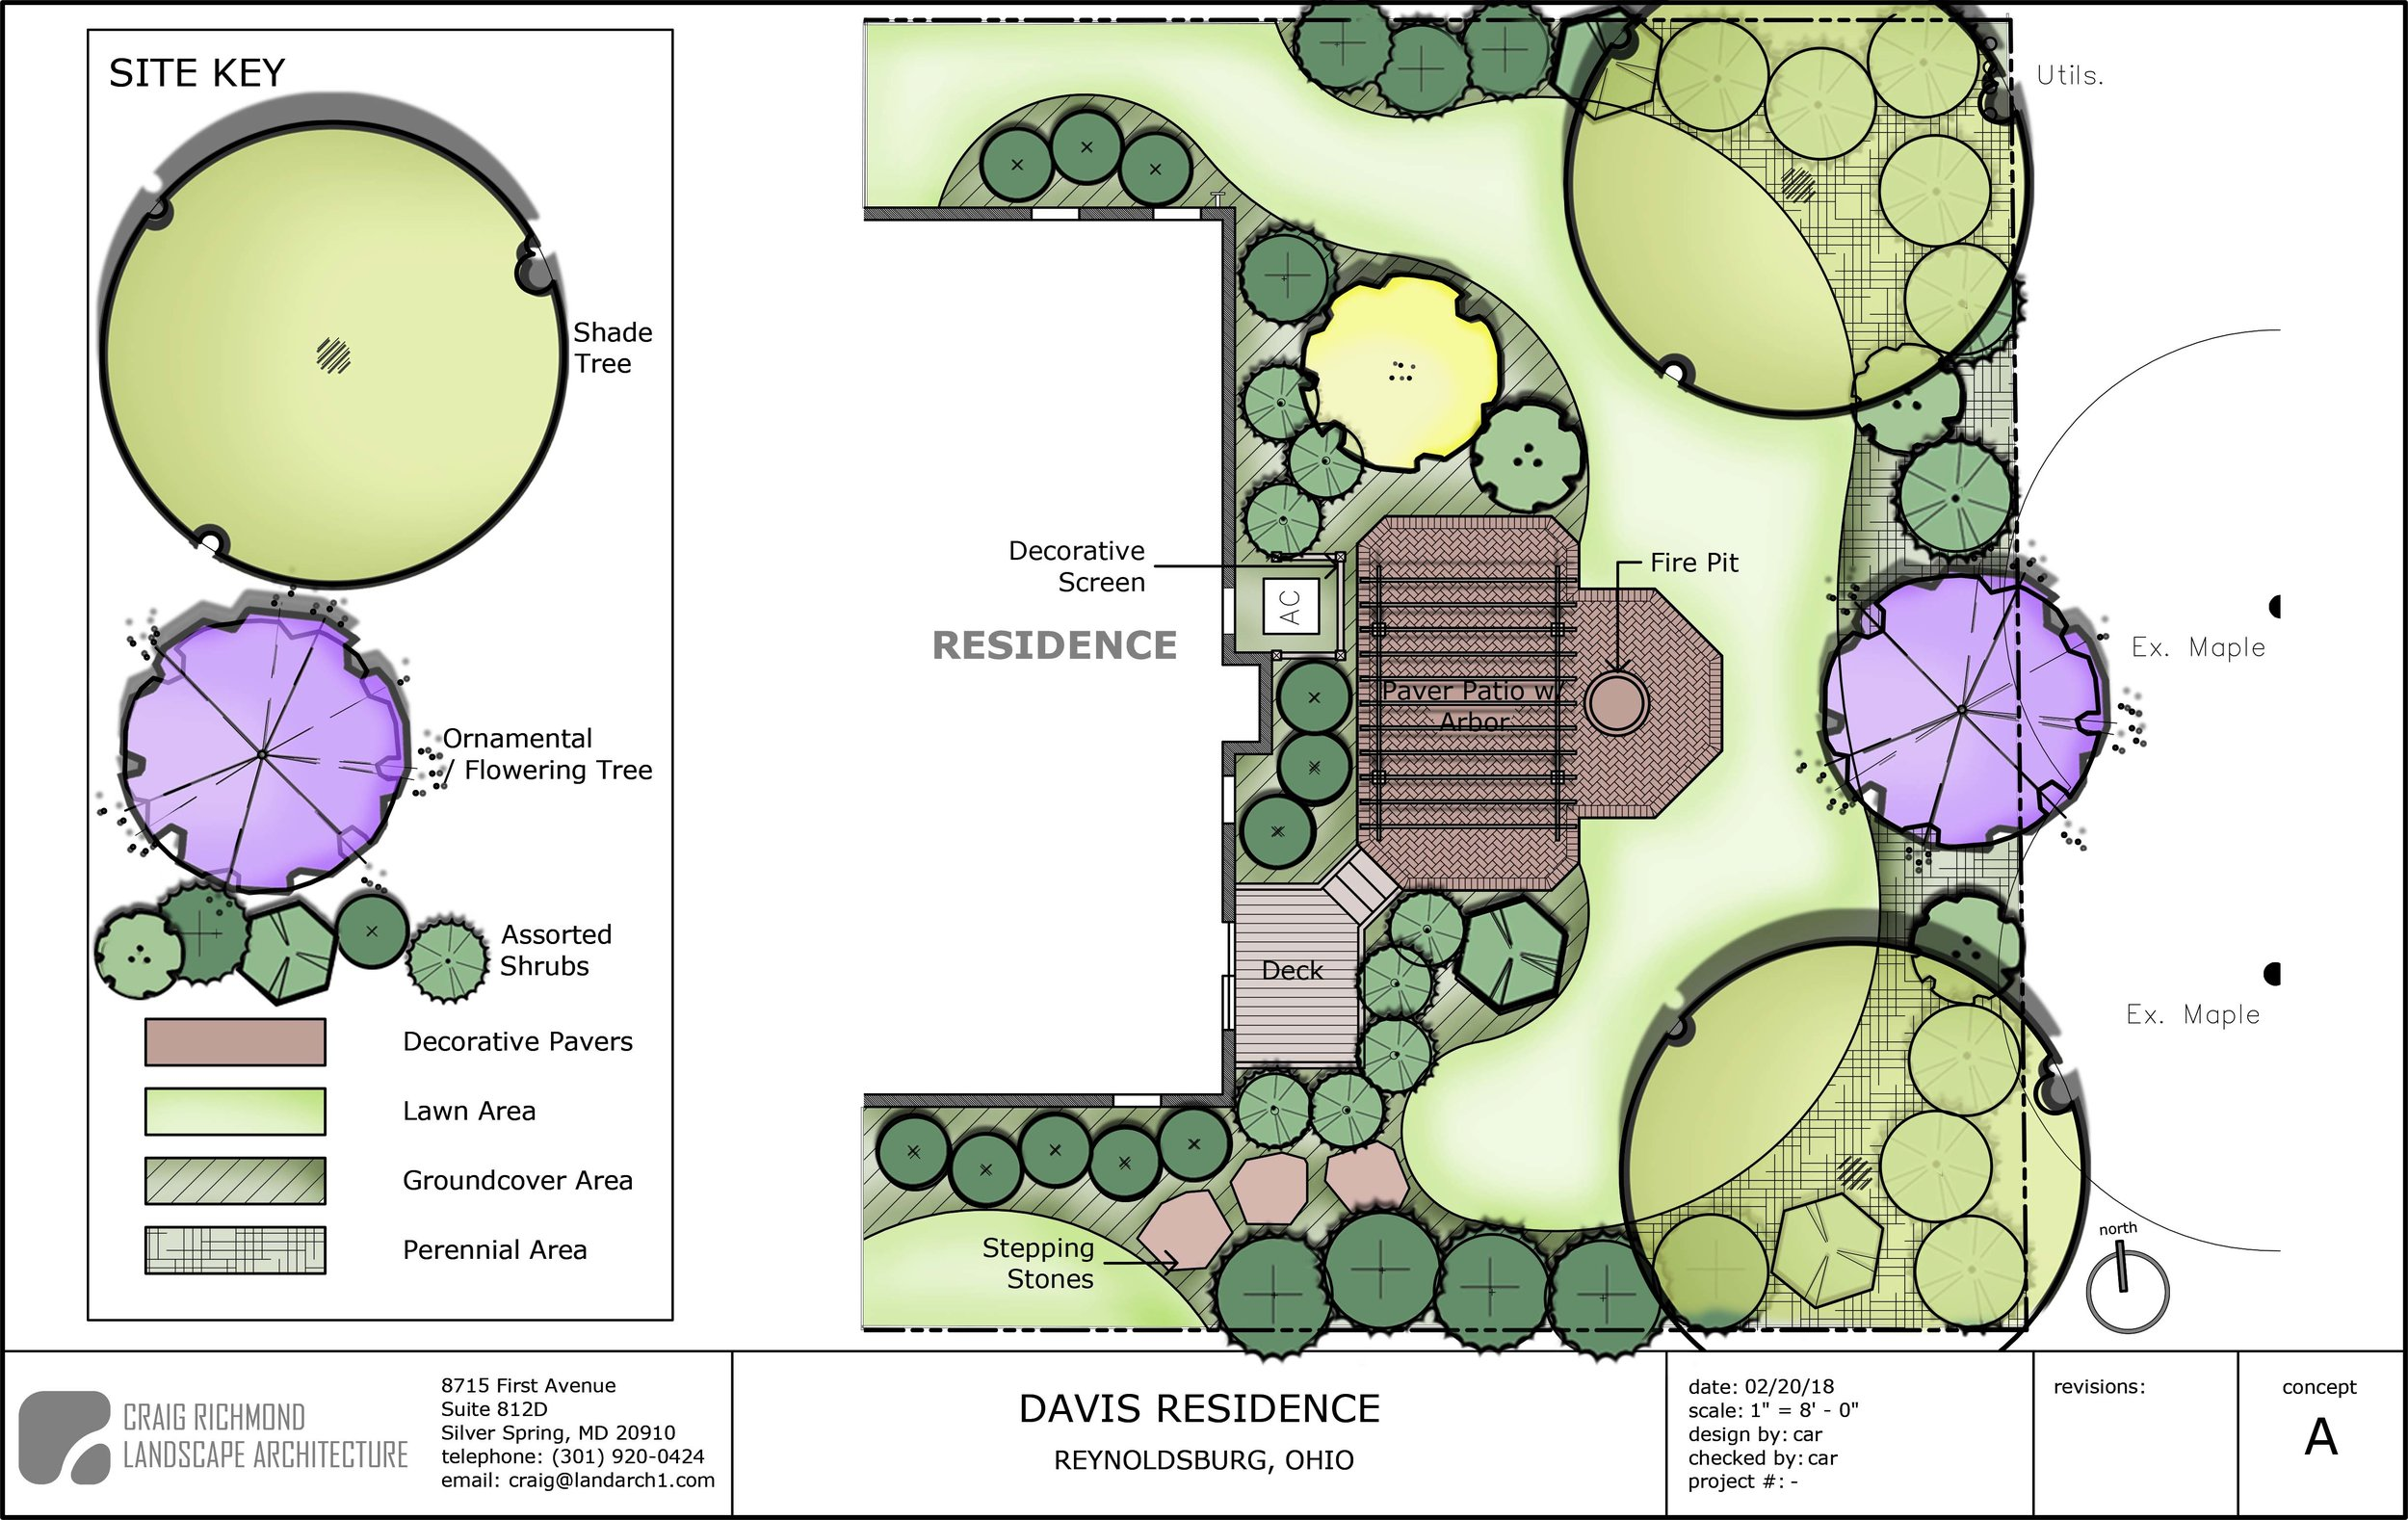 Single Family Residence-Rear Yard Concept #1, Columbus,OH  The client wanted a deck and patio, with fire pit. Privacy screening was the most important issue for them. The concept illustrates a small rectangular deck connecting to a brick patio with a pergola.